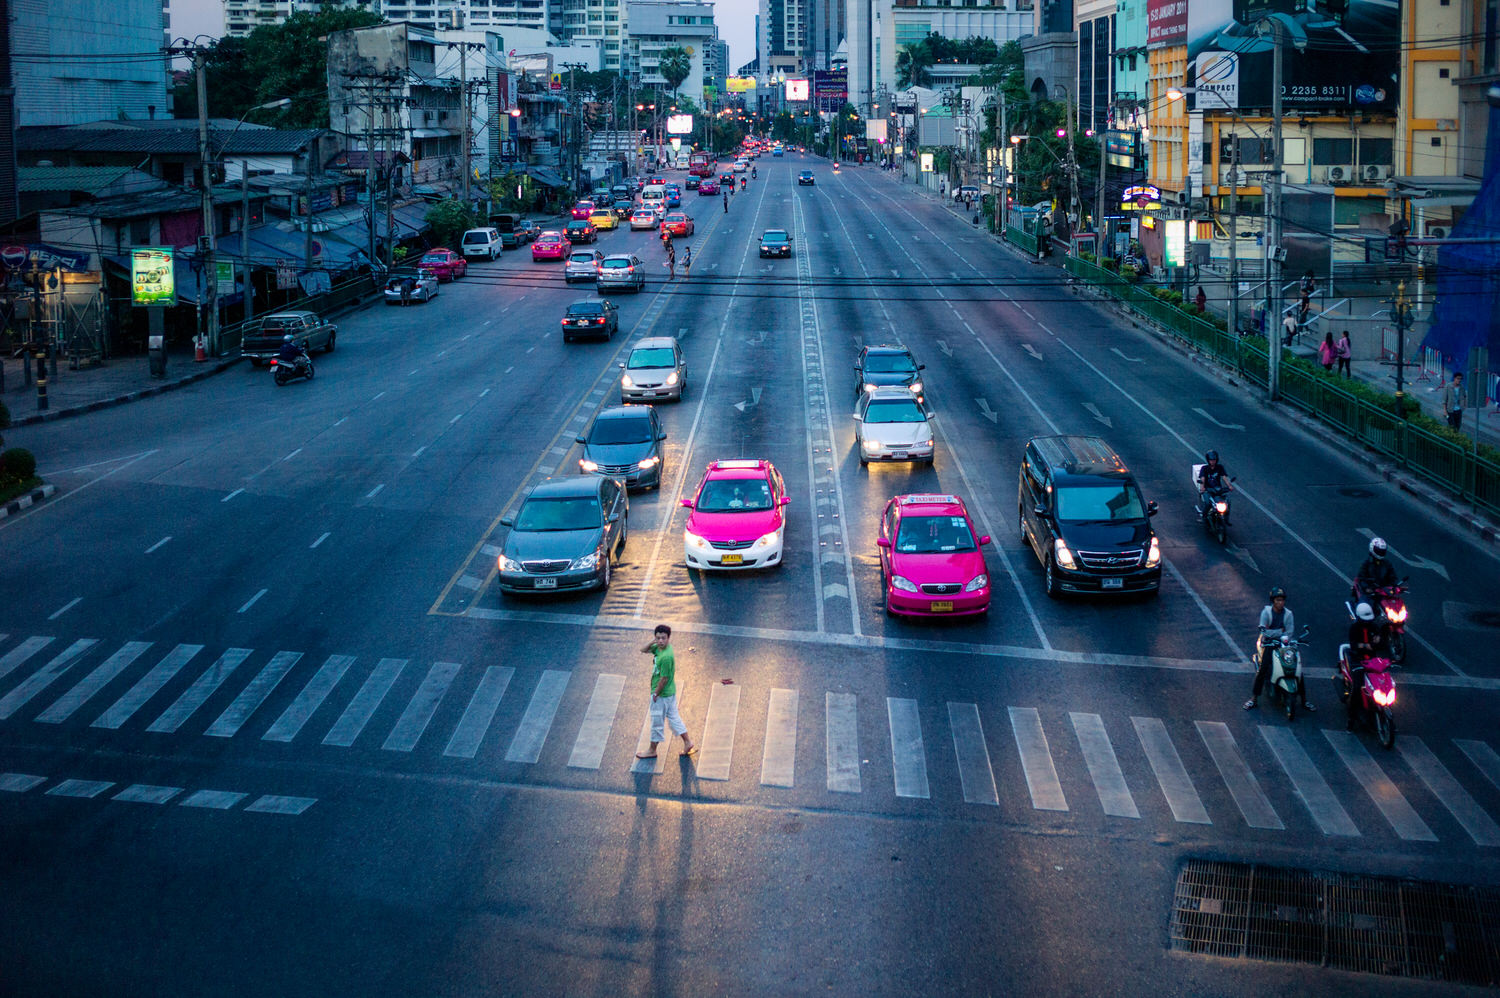 A man casually making his way across a  pedestrian crossing  at dusk in  Bangkok, Thailand .